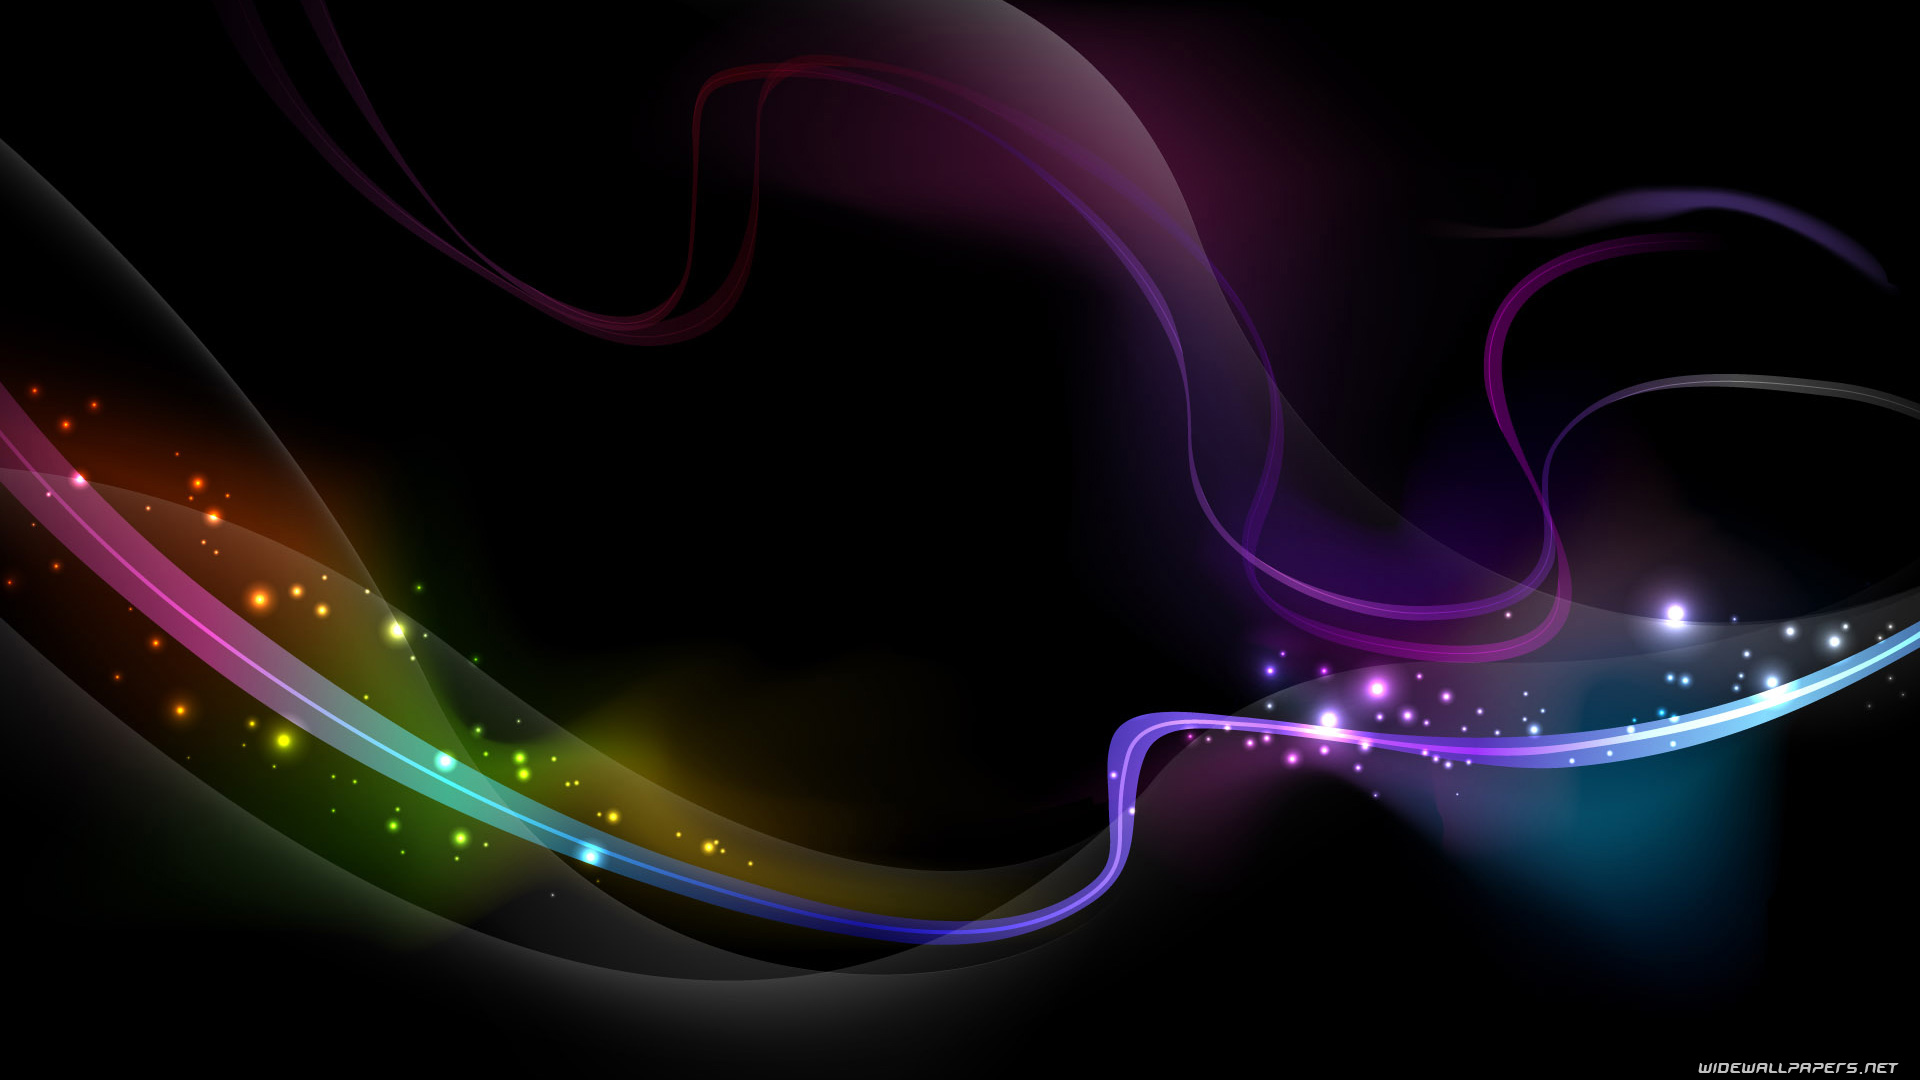 Dark Abstract Backgrounds Download HD Wallpapers 1920x1080